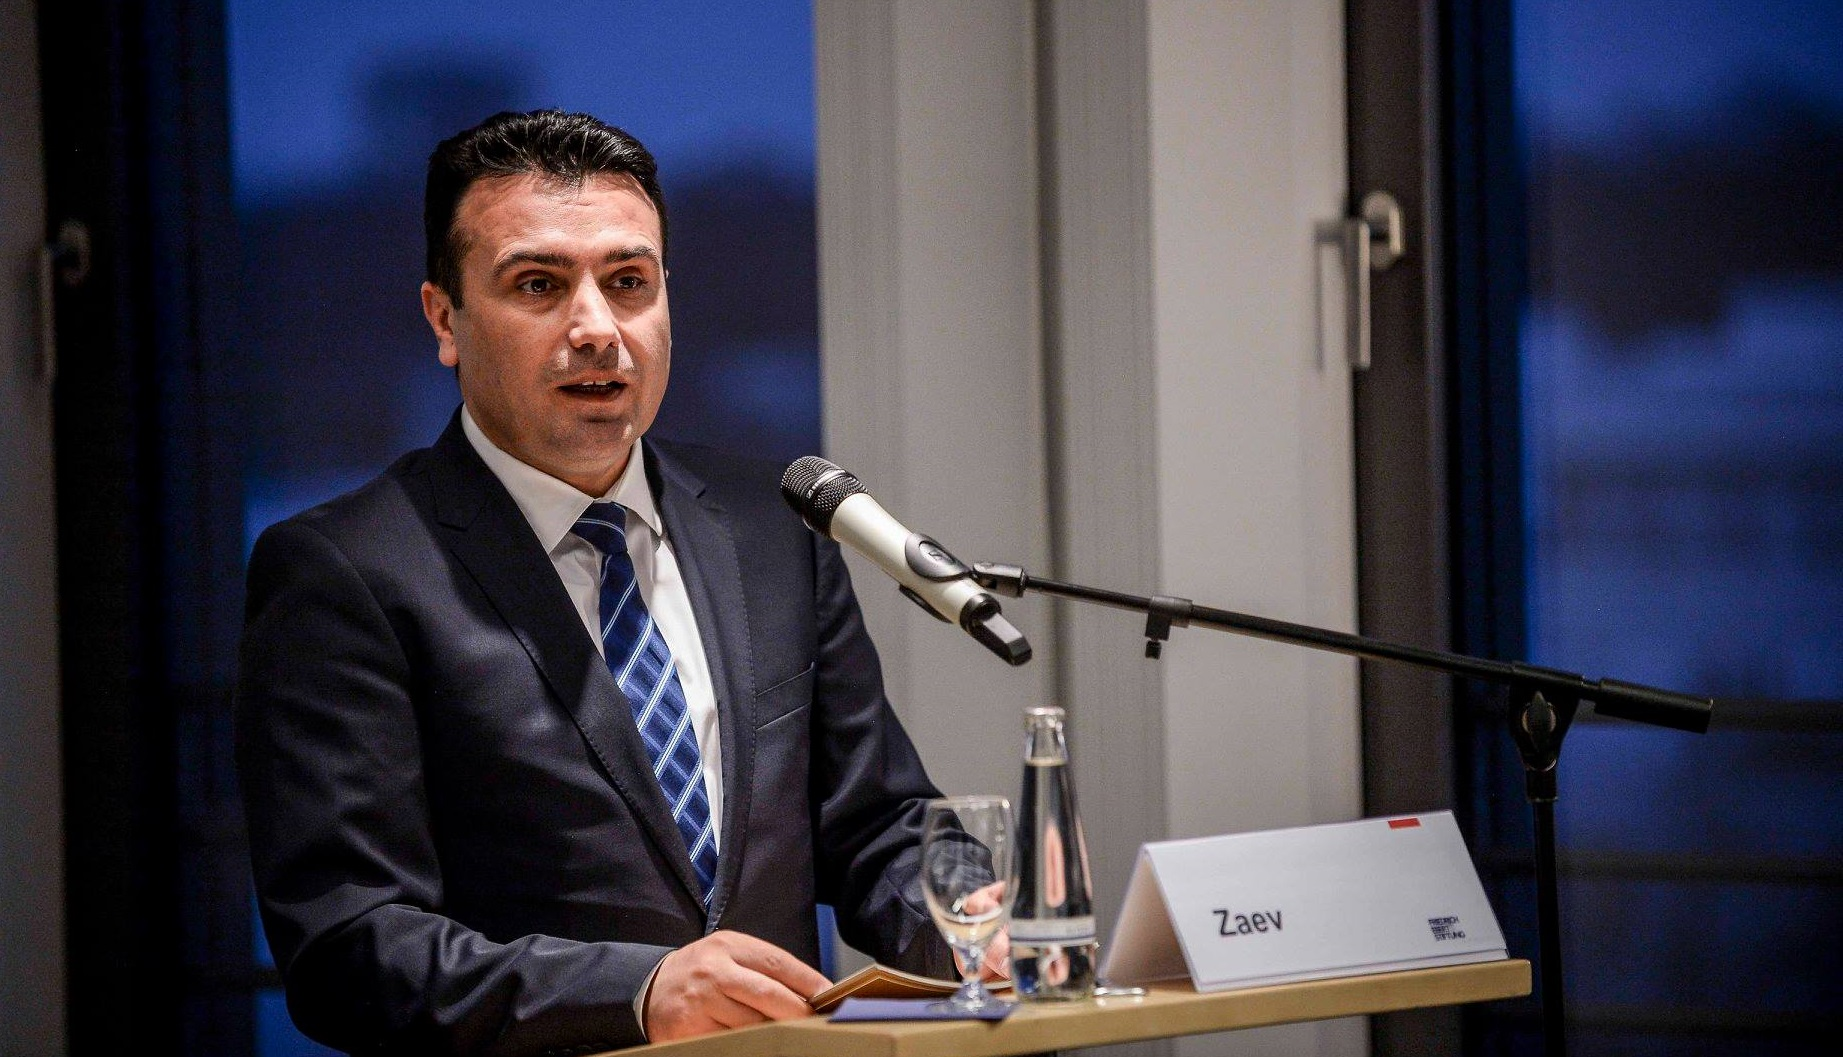 Zaev tells Berlin conference: Macedonia deserves individual assessment over EU accession